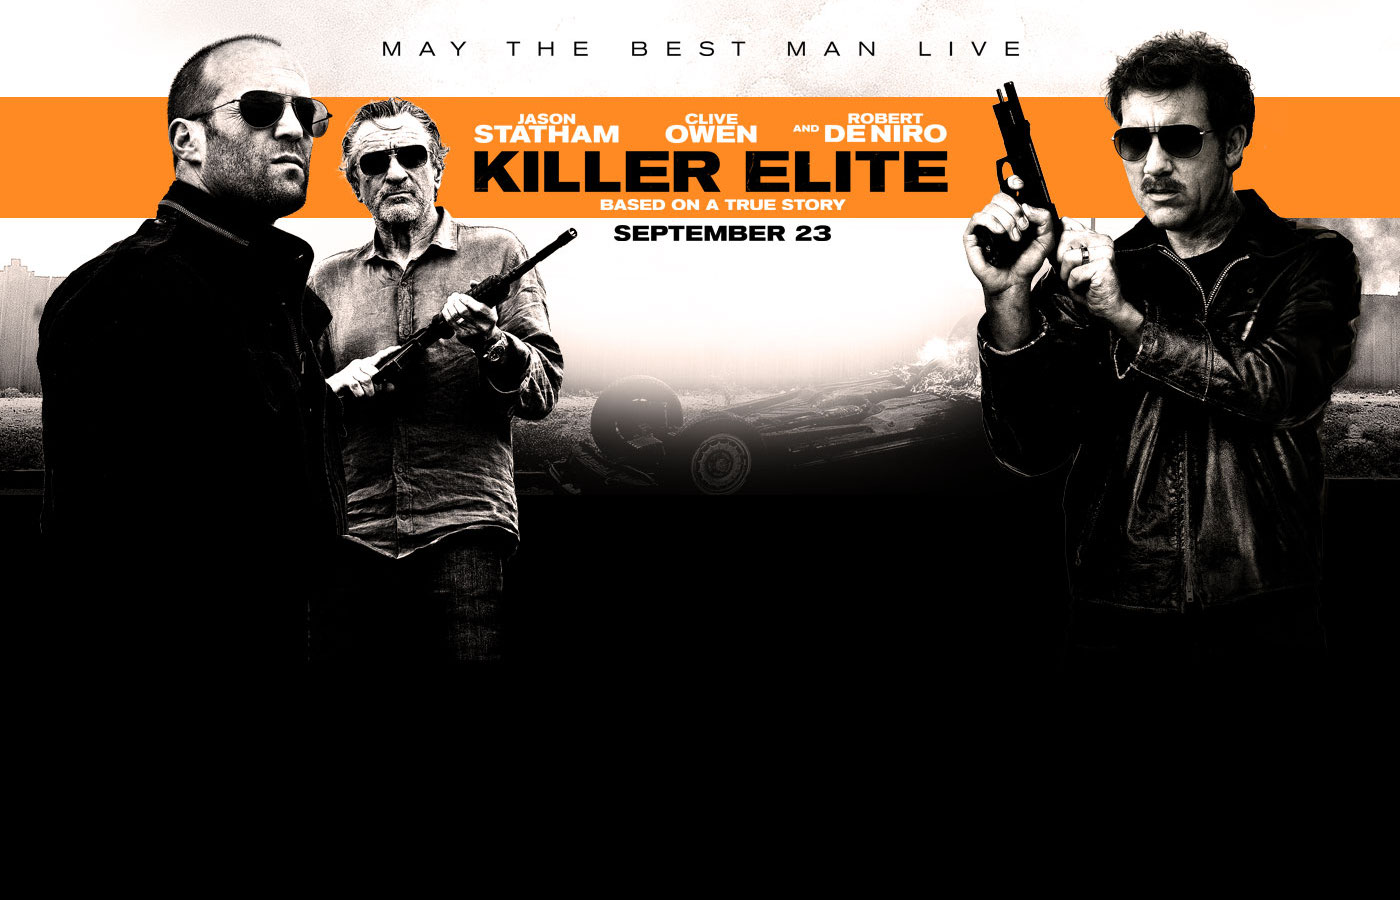 http://1.bp.blogspot.com/-mwEI2pW69JQ/TwfXROwCpxI/AAAAAAAAEAk/YtGxxsqcVao/s1600/Killer-Elite-Wallpaper-02.jpg